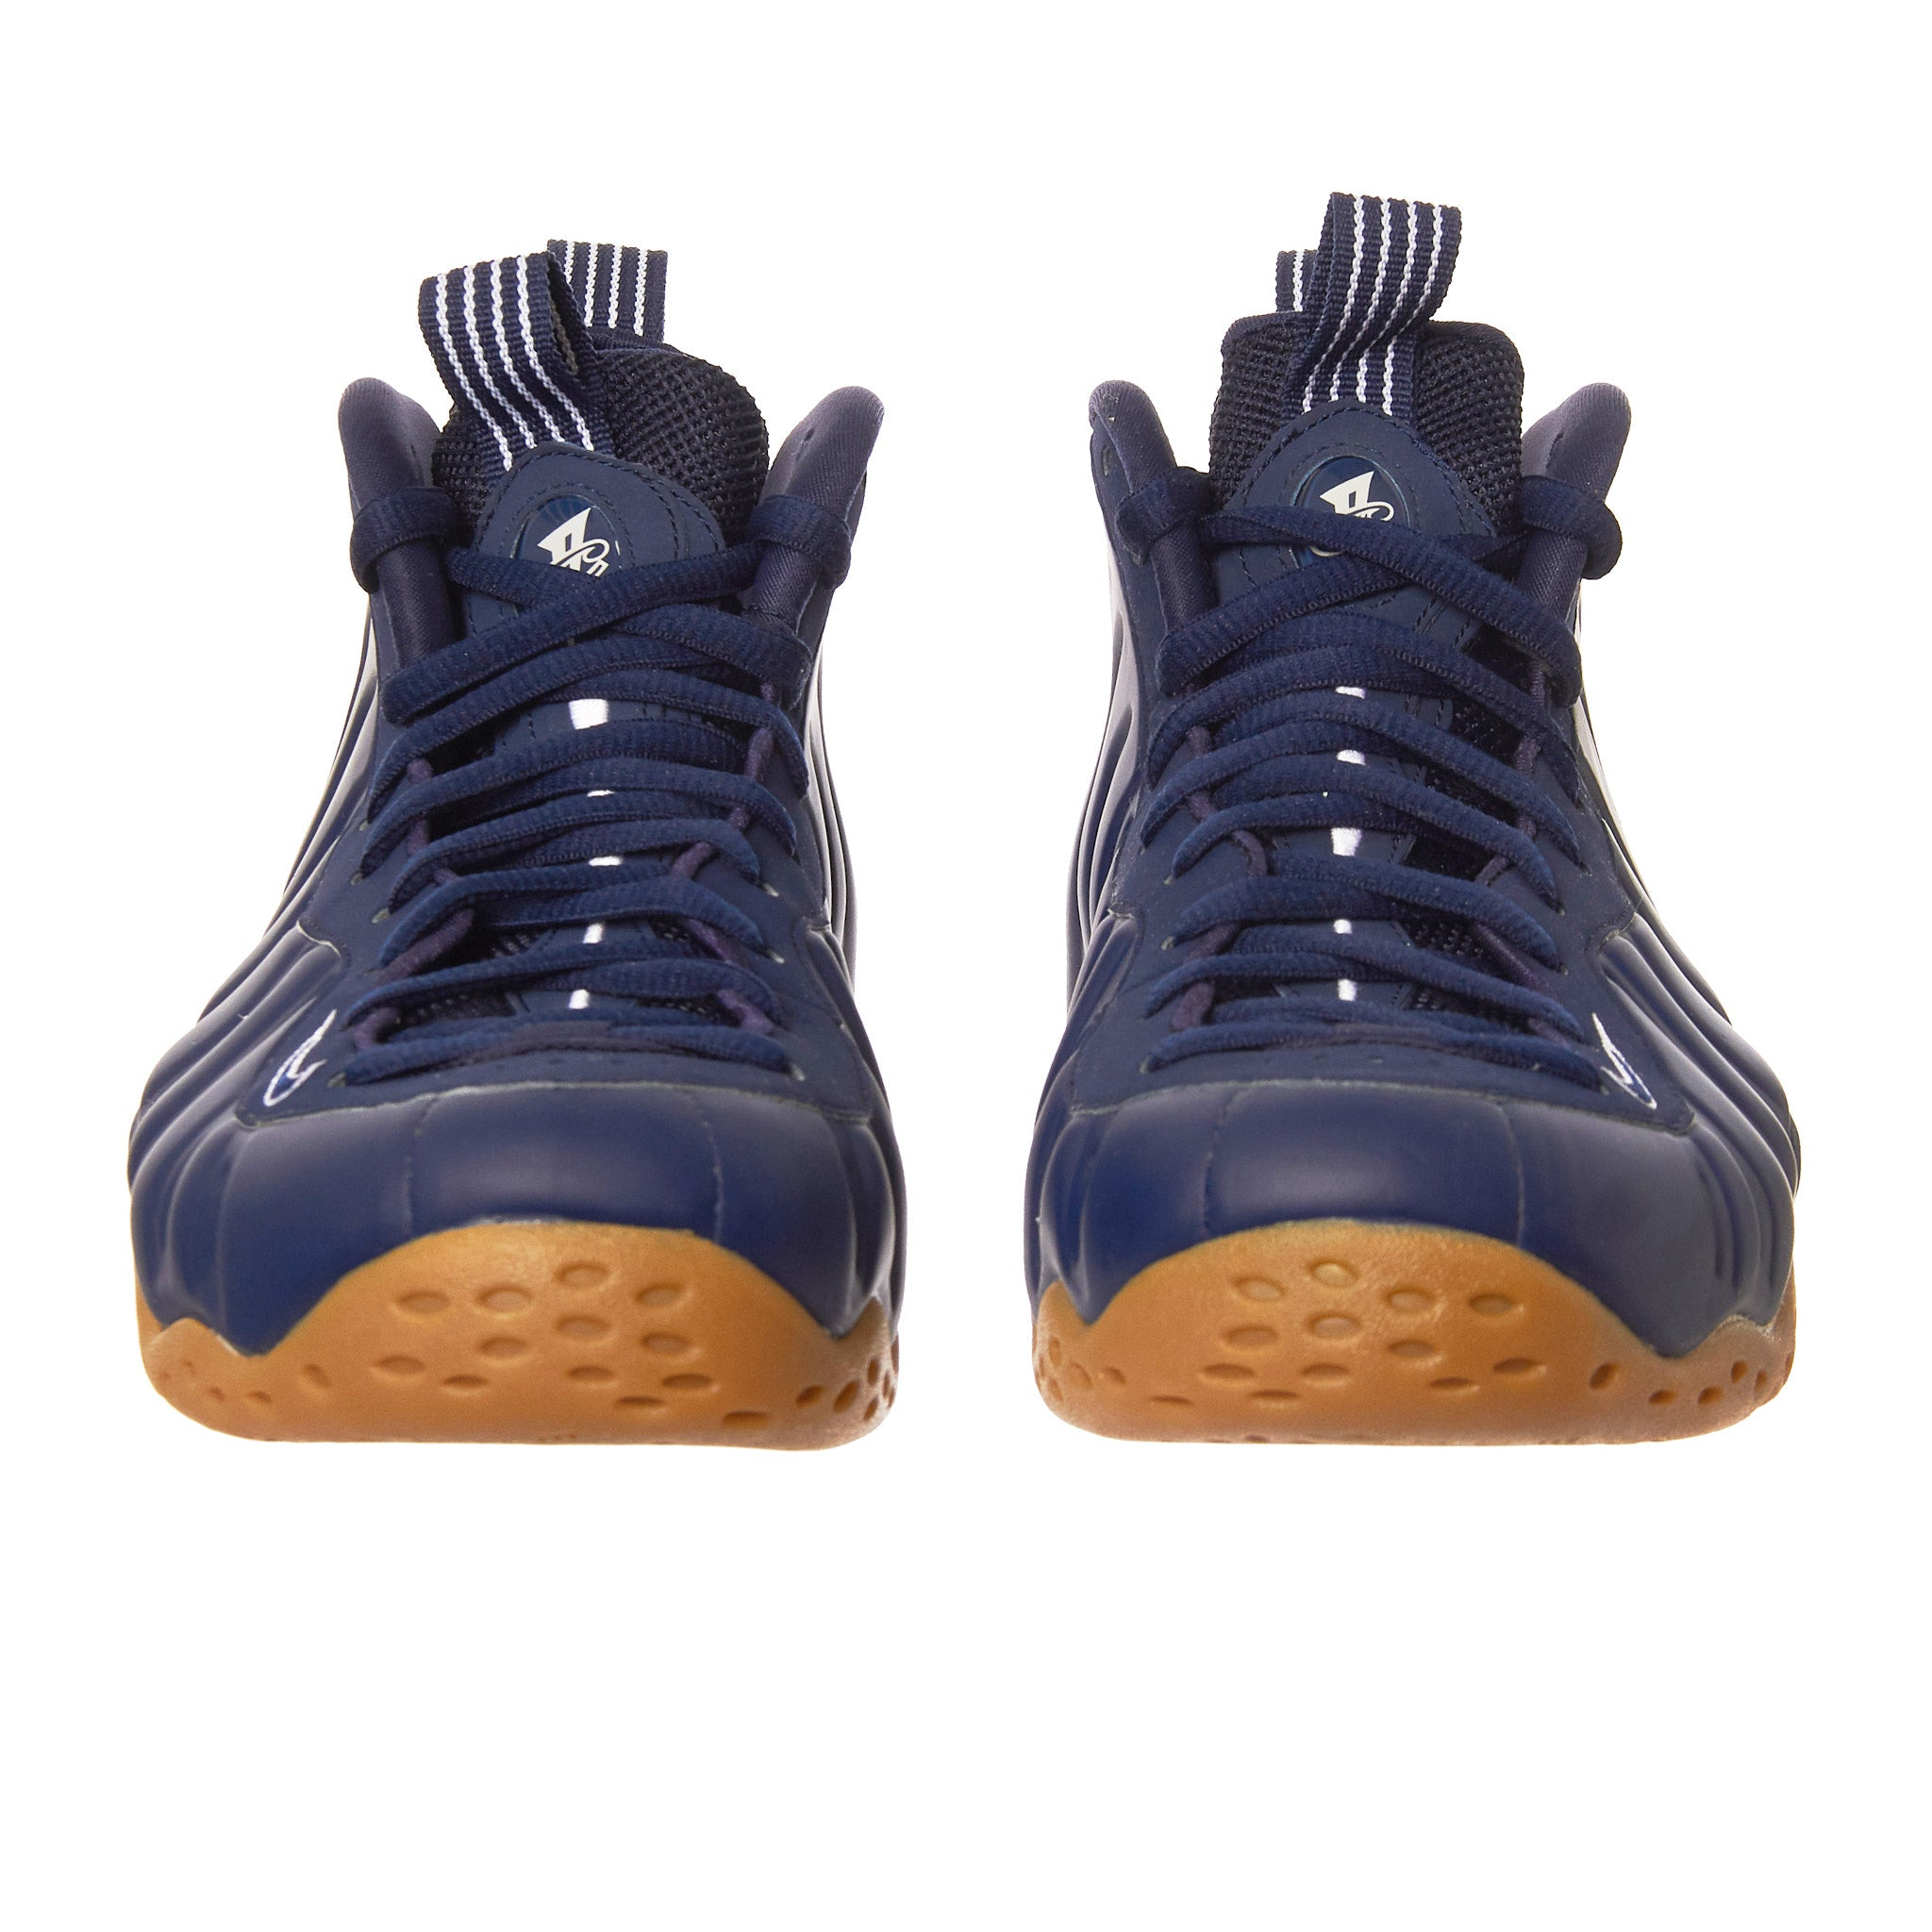 4d1465cc996ec AIR FOAMPOSITE 1 – Wish Atlanta